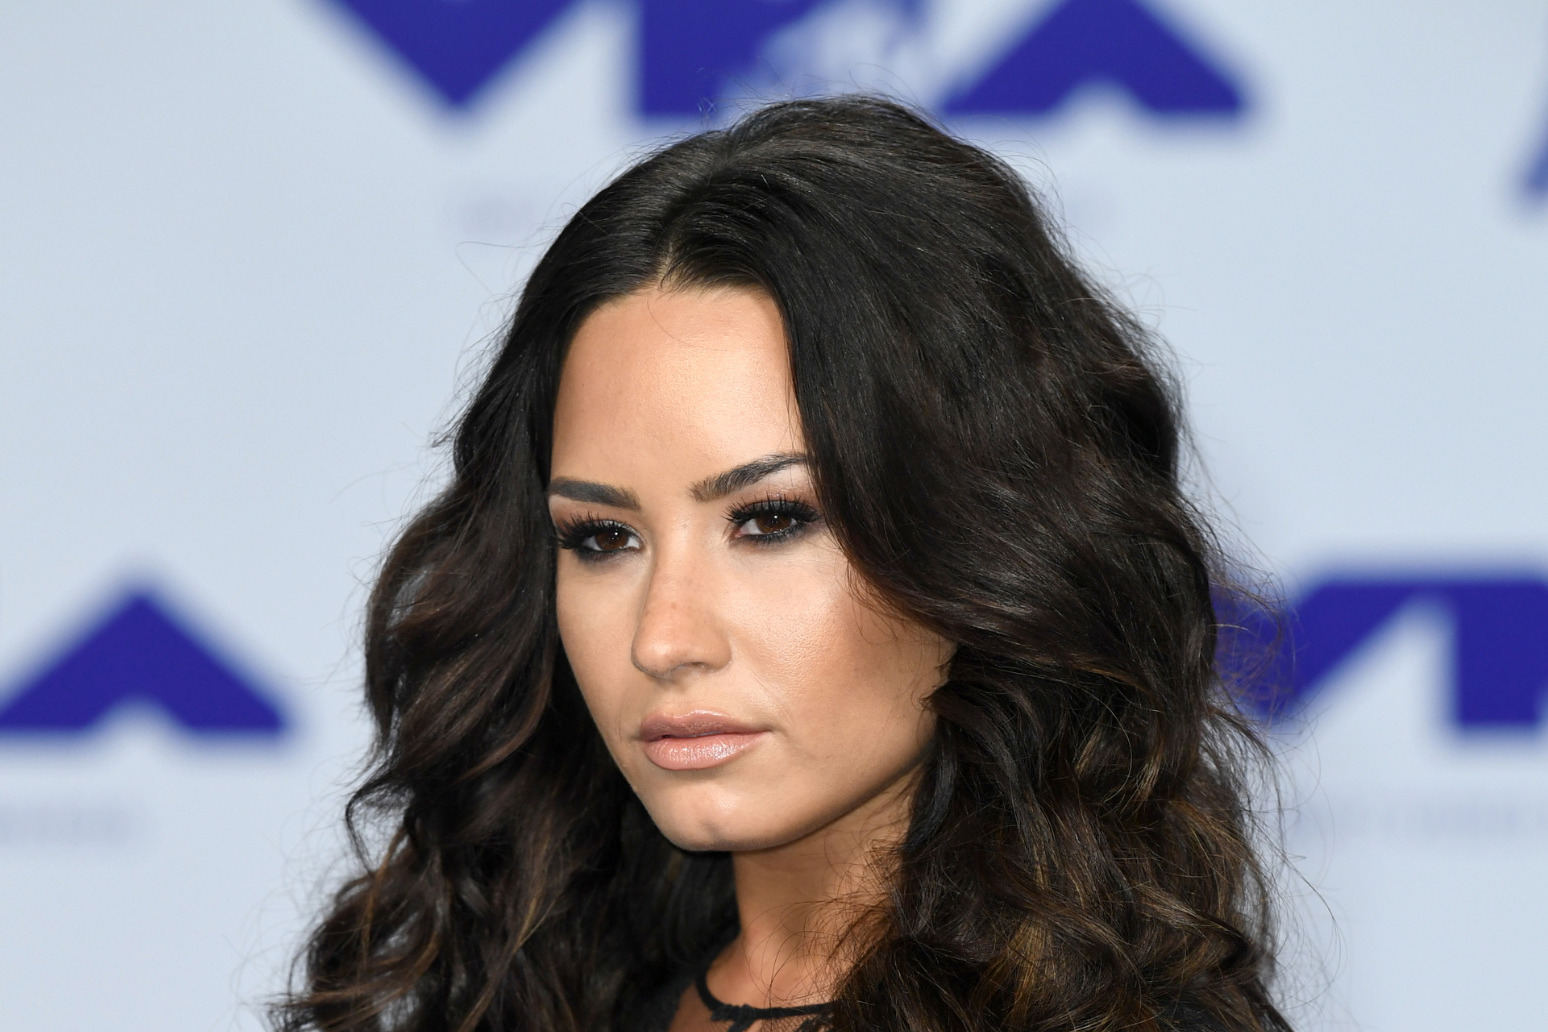 Demi Lovato says end of their engagement allowed them to become 'authentic self'